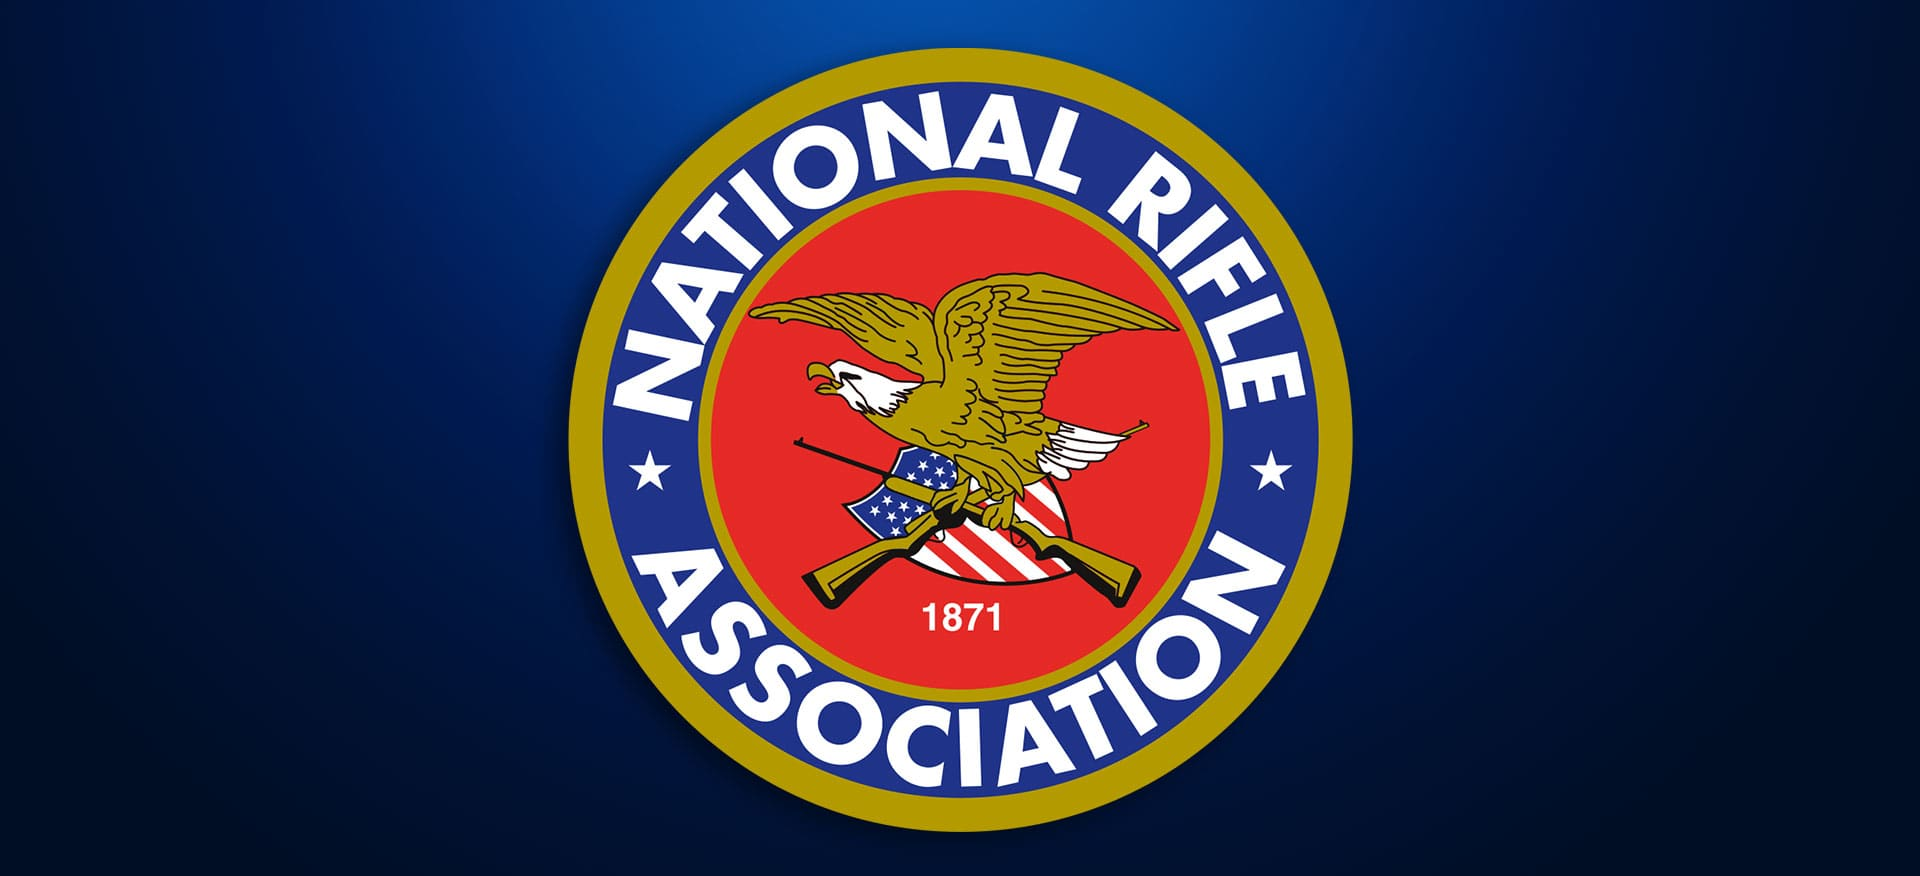 Nra dating site